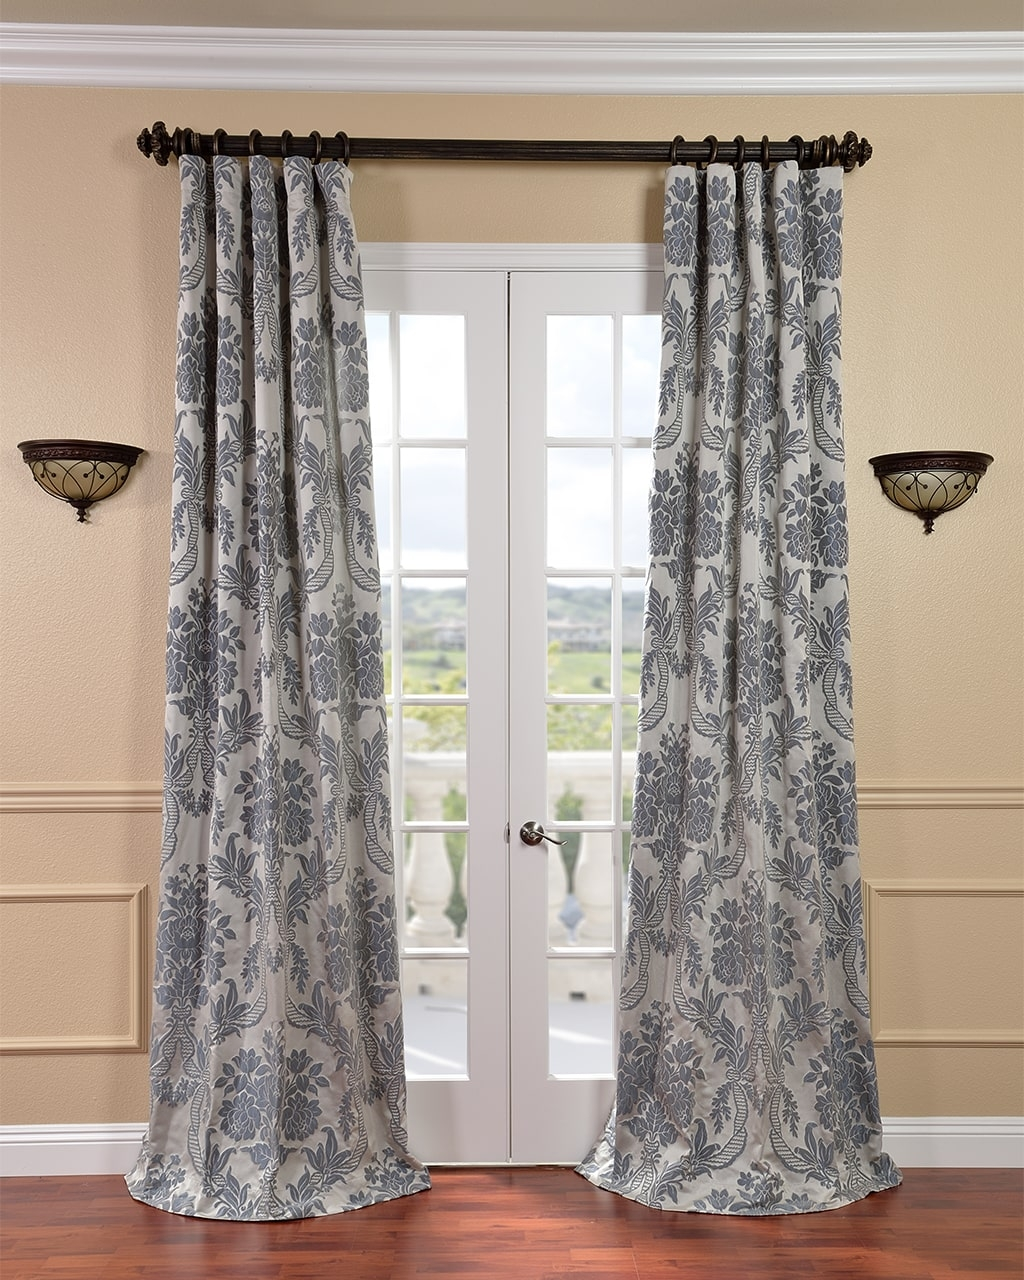 120 Inches Curtains Drapes Shop The Best Brands Overstock Throughout Extra Long Door Curtain (Image 1 of 15)